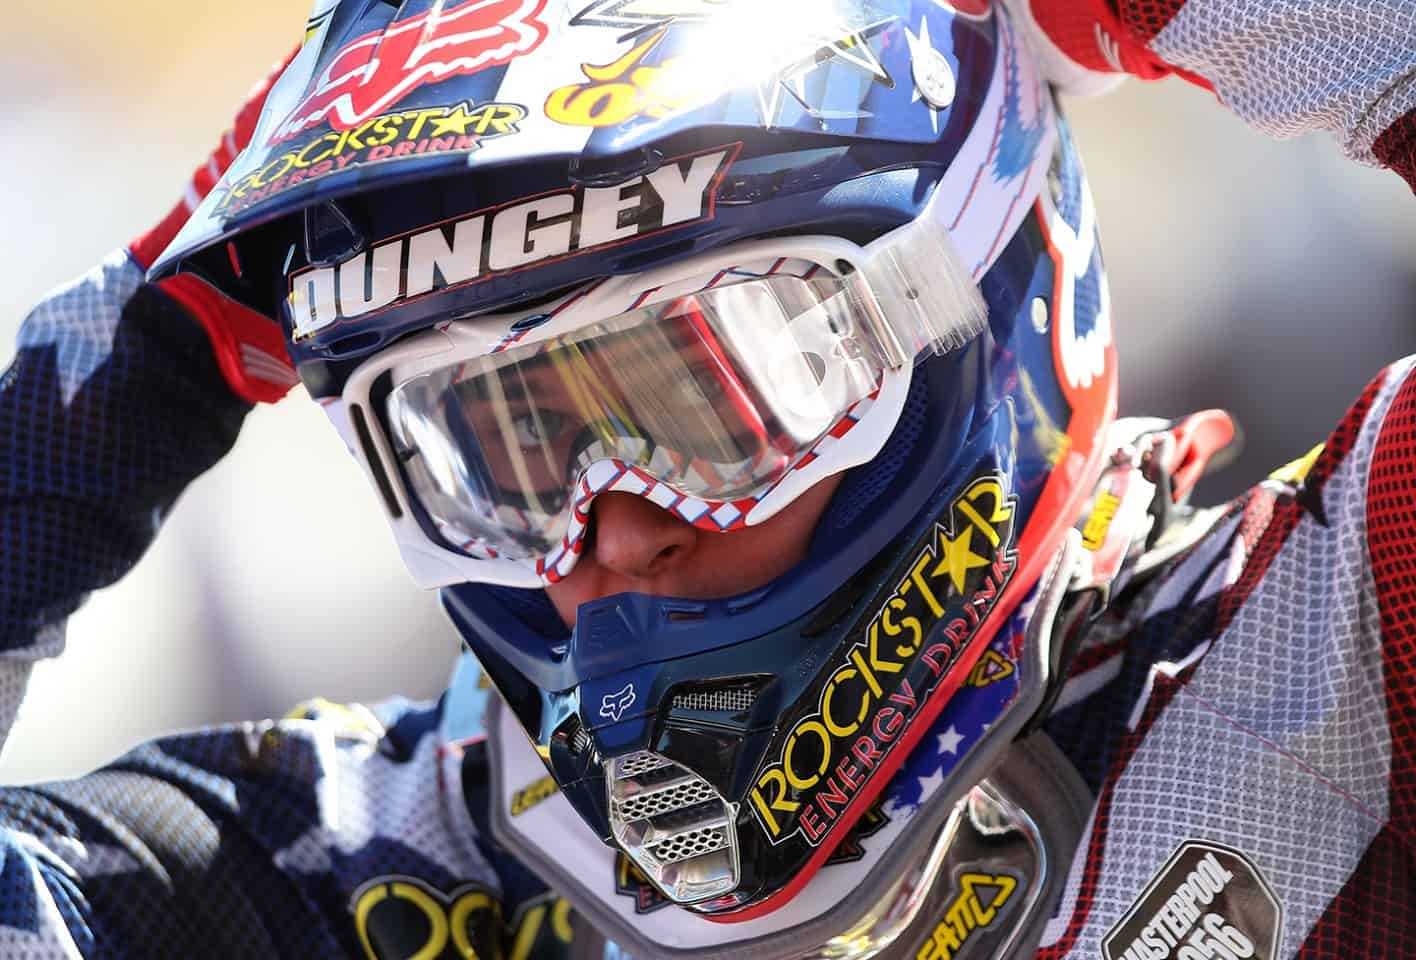 Motocoss of Nations 2010 in Lakewood, Colorado - Ryan Dungey